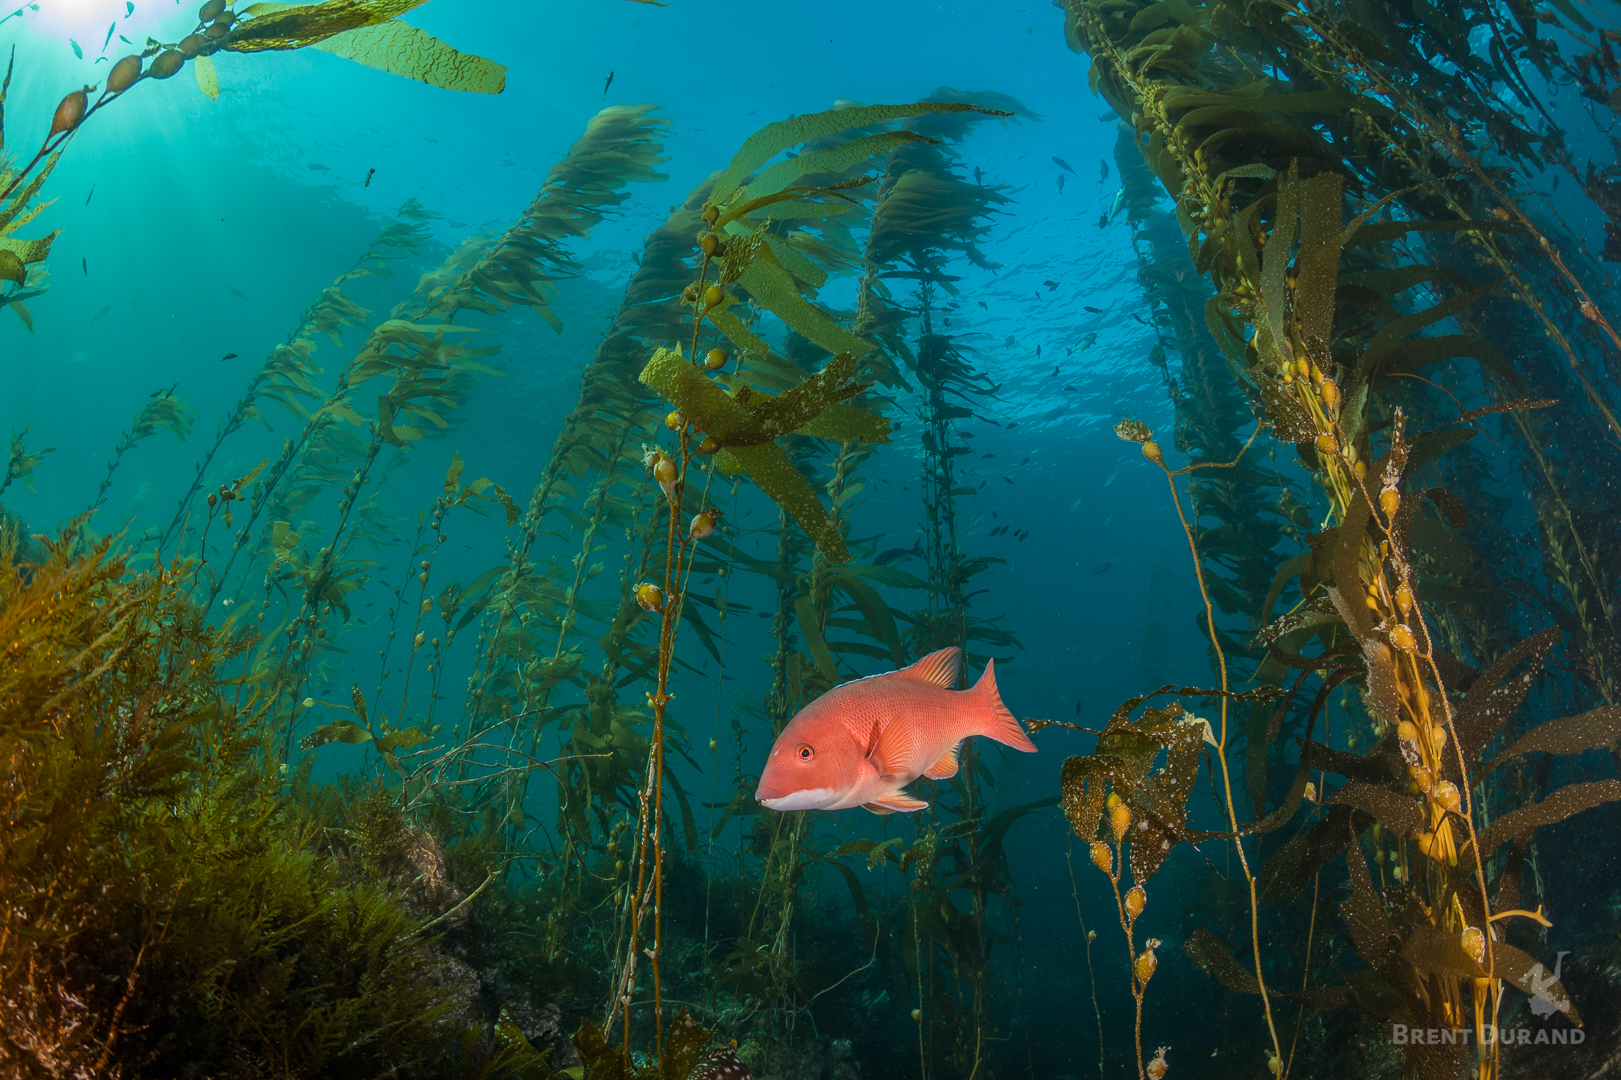 A female sheephead swims through the towering kelp forest at Anacapa Island in California's Channel Islands National Park.